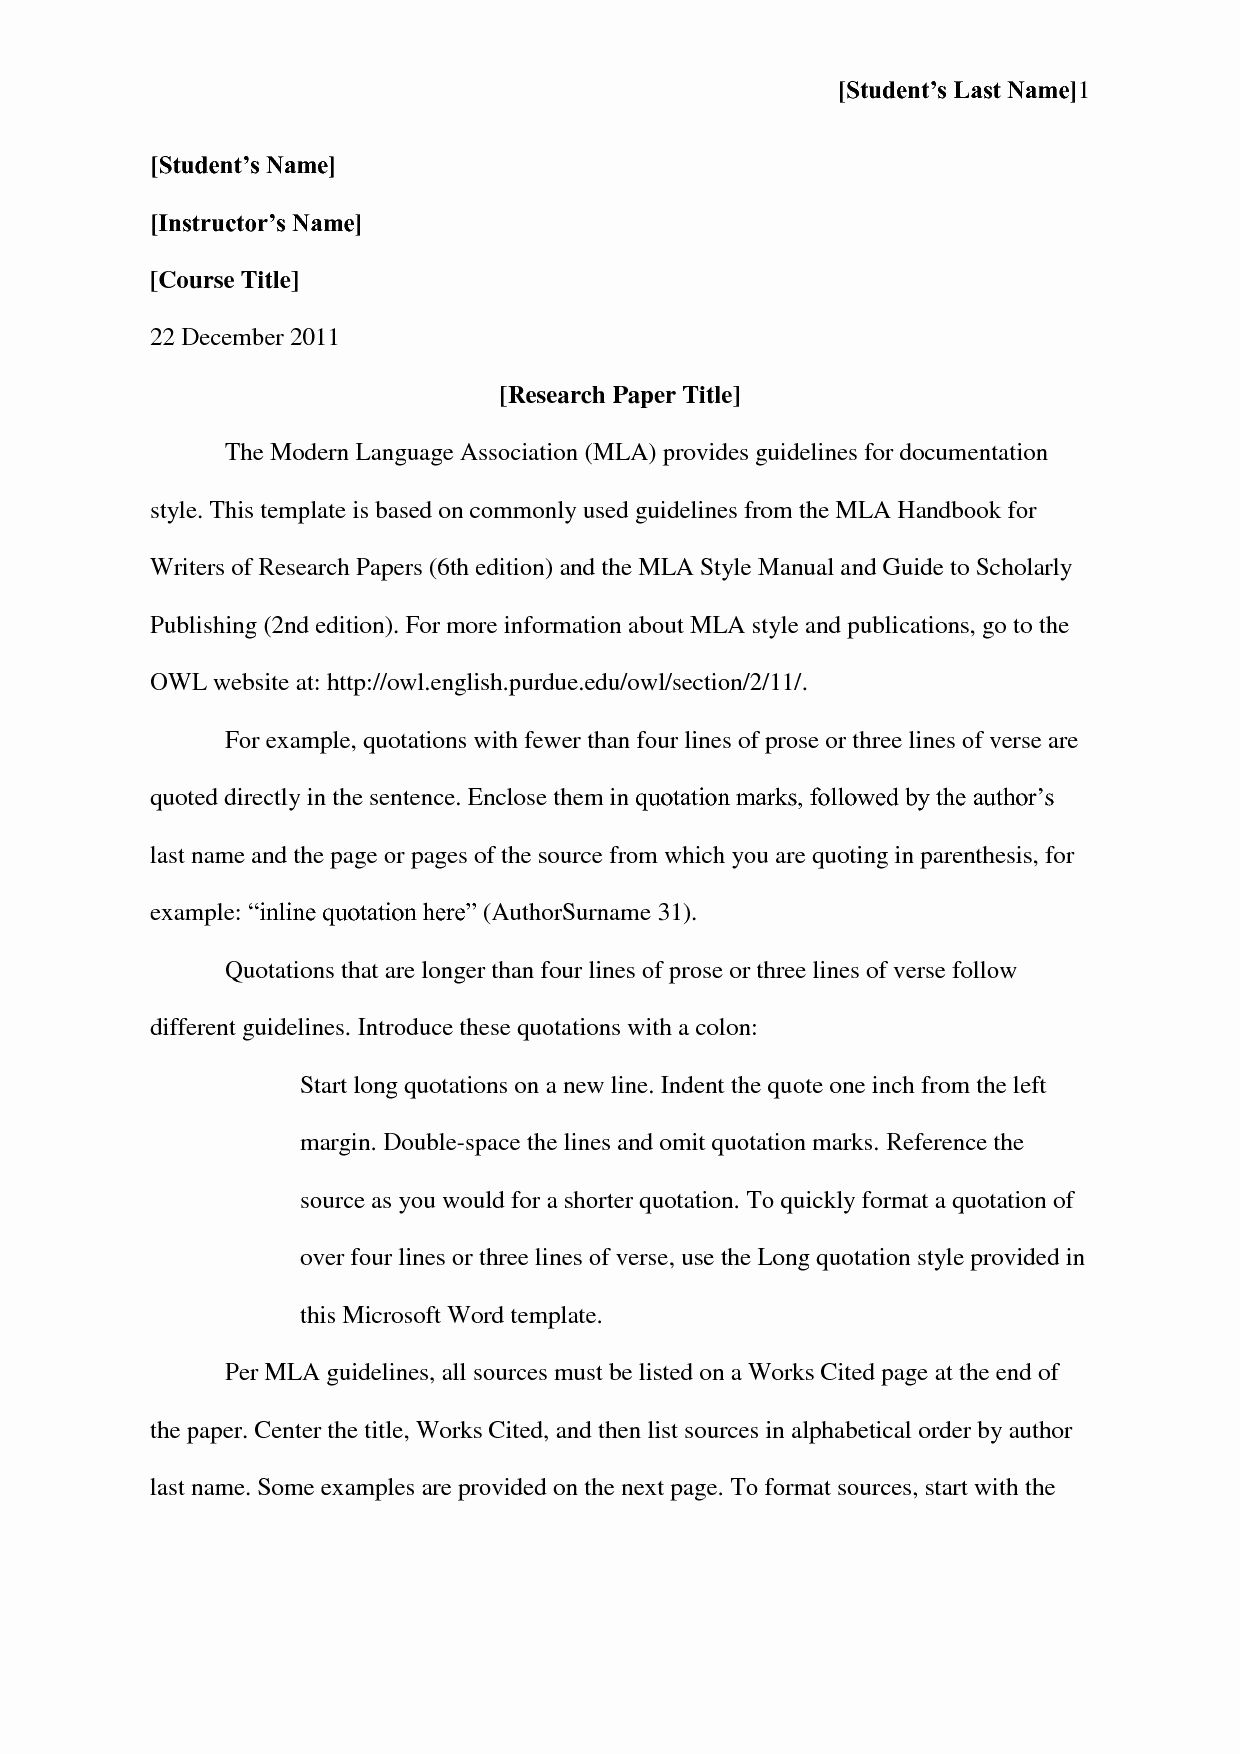 012 Mla Title Page Template Awesome Format Works Cited Scarlet Letter Best Of Apa Style Essay Research Impressive Purdue Owl Sample Reference Example Full